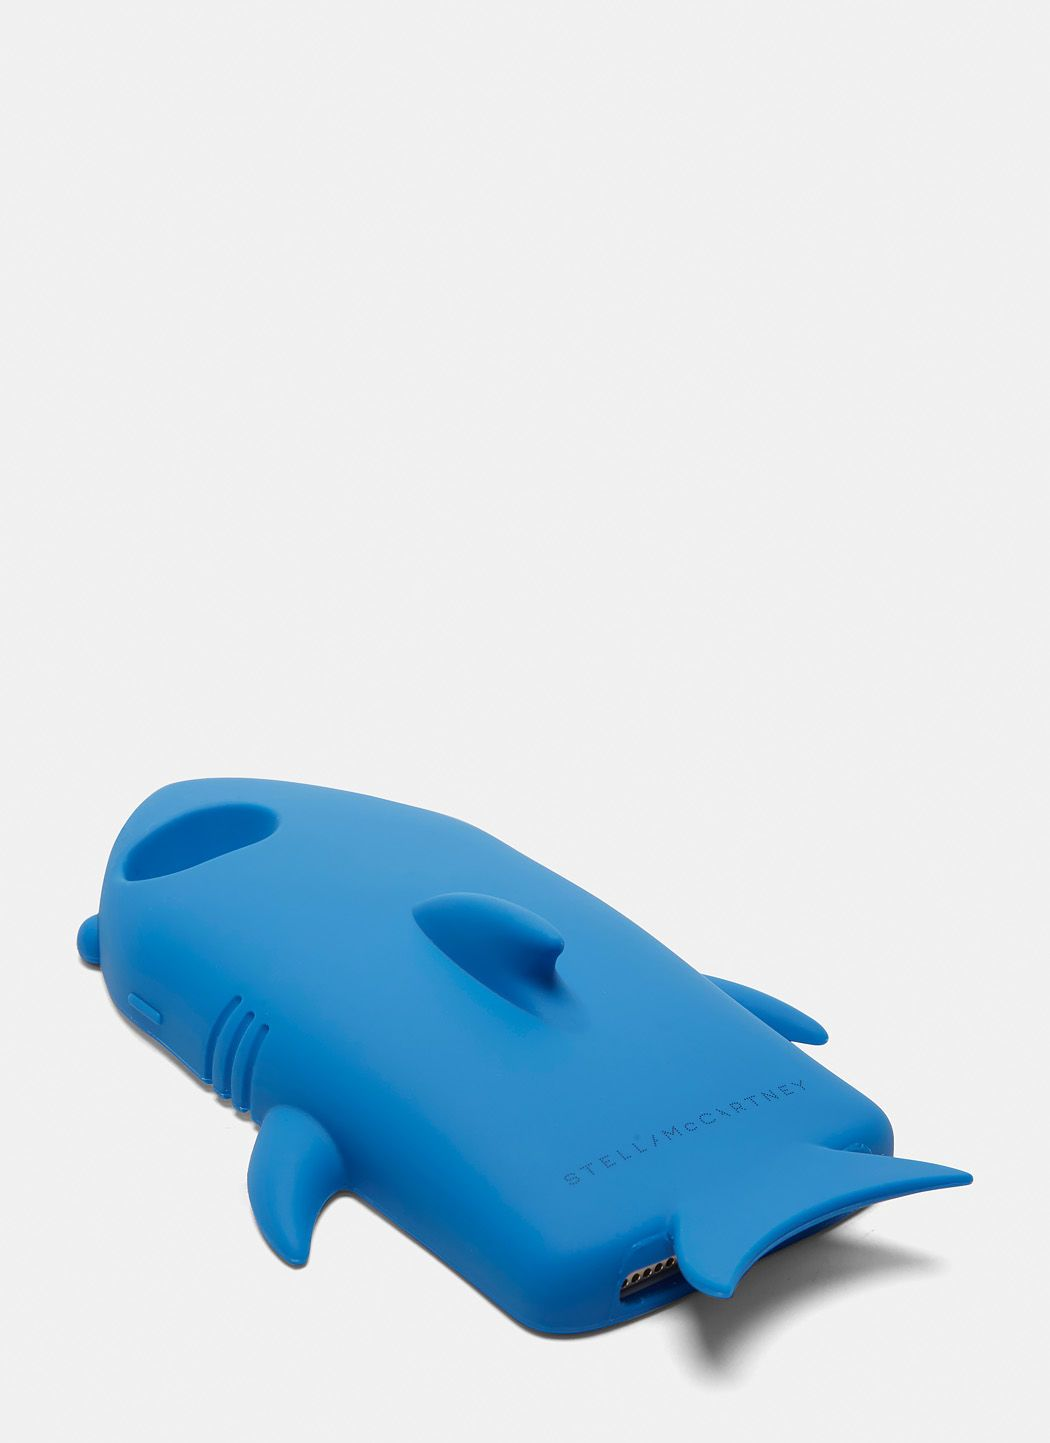 STELLA MCCARTNEY Women S Shark Iphone 6 Case In Blue.  stellamccartney   fc091a43a